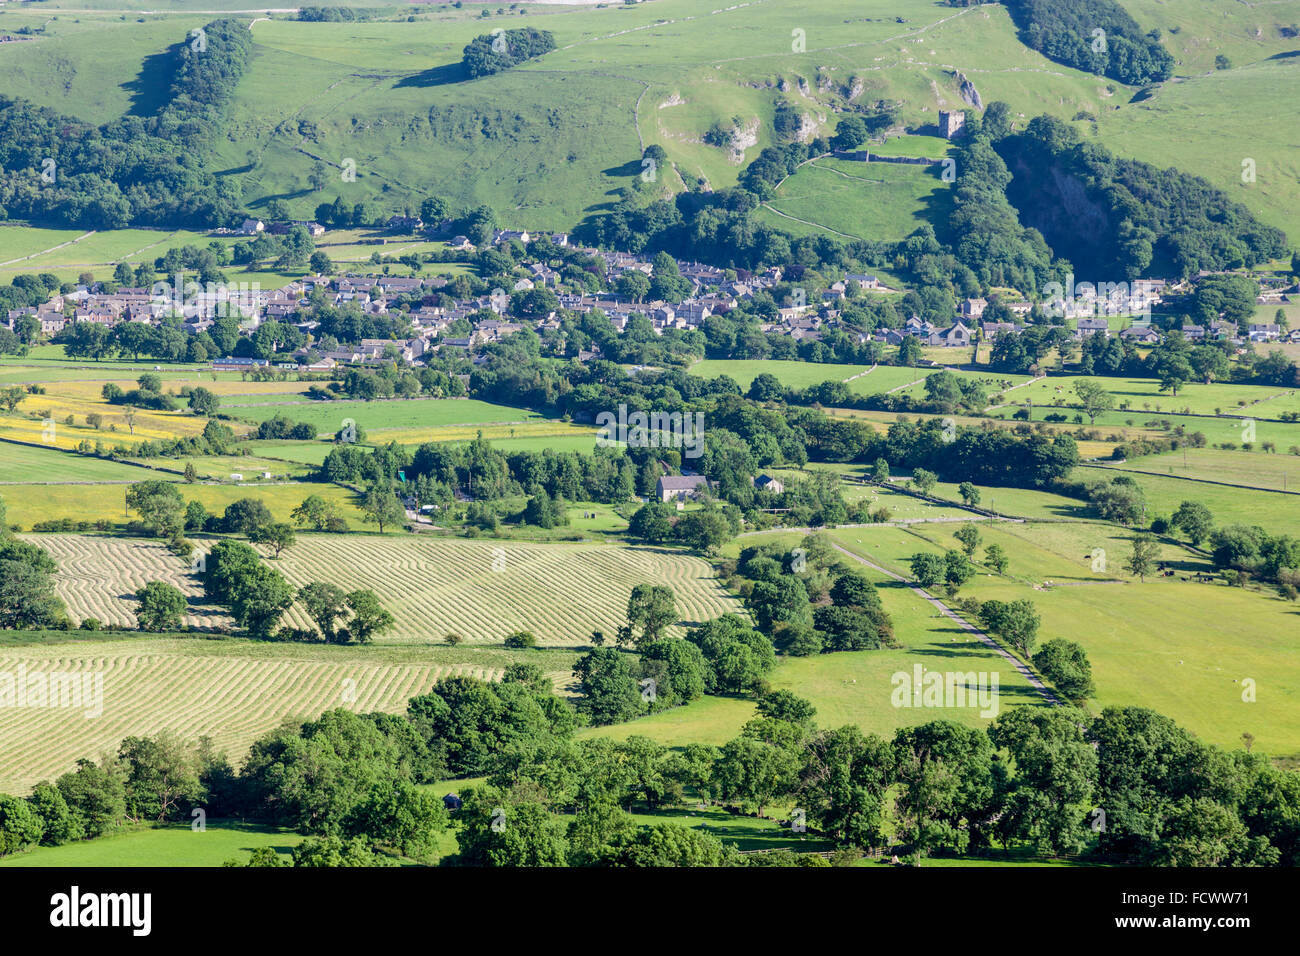 Looking across Hope Valley with Castleton in the distance, Derbyshire, Peak District, England, UK - Stock Image